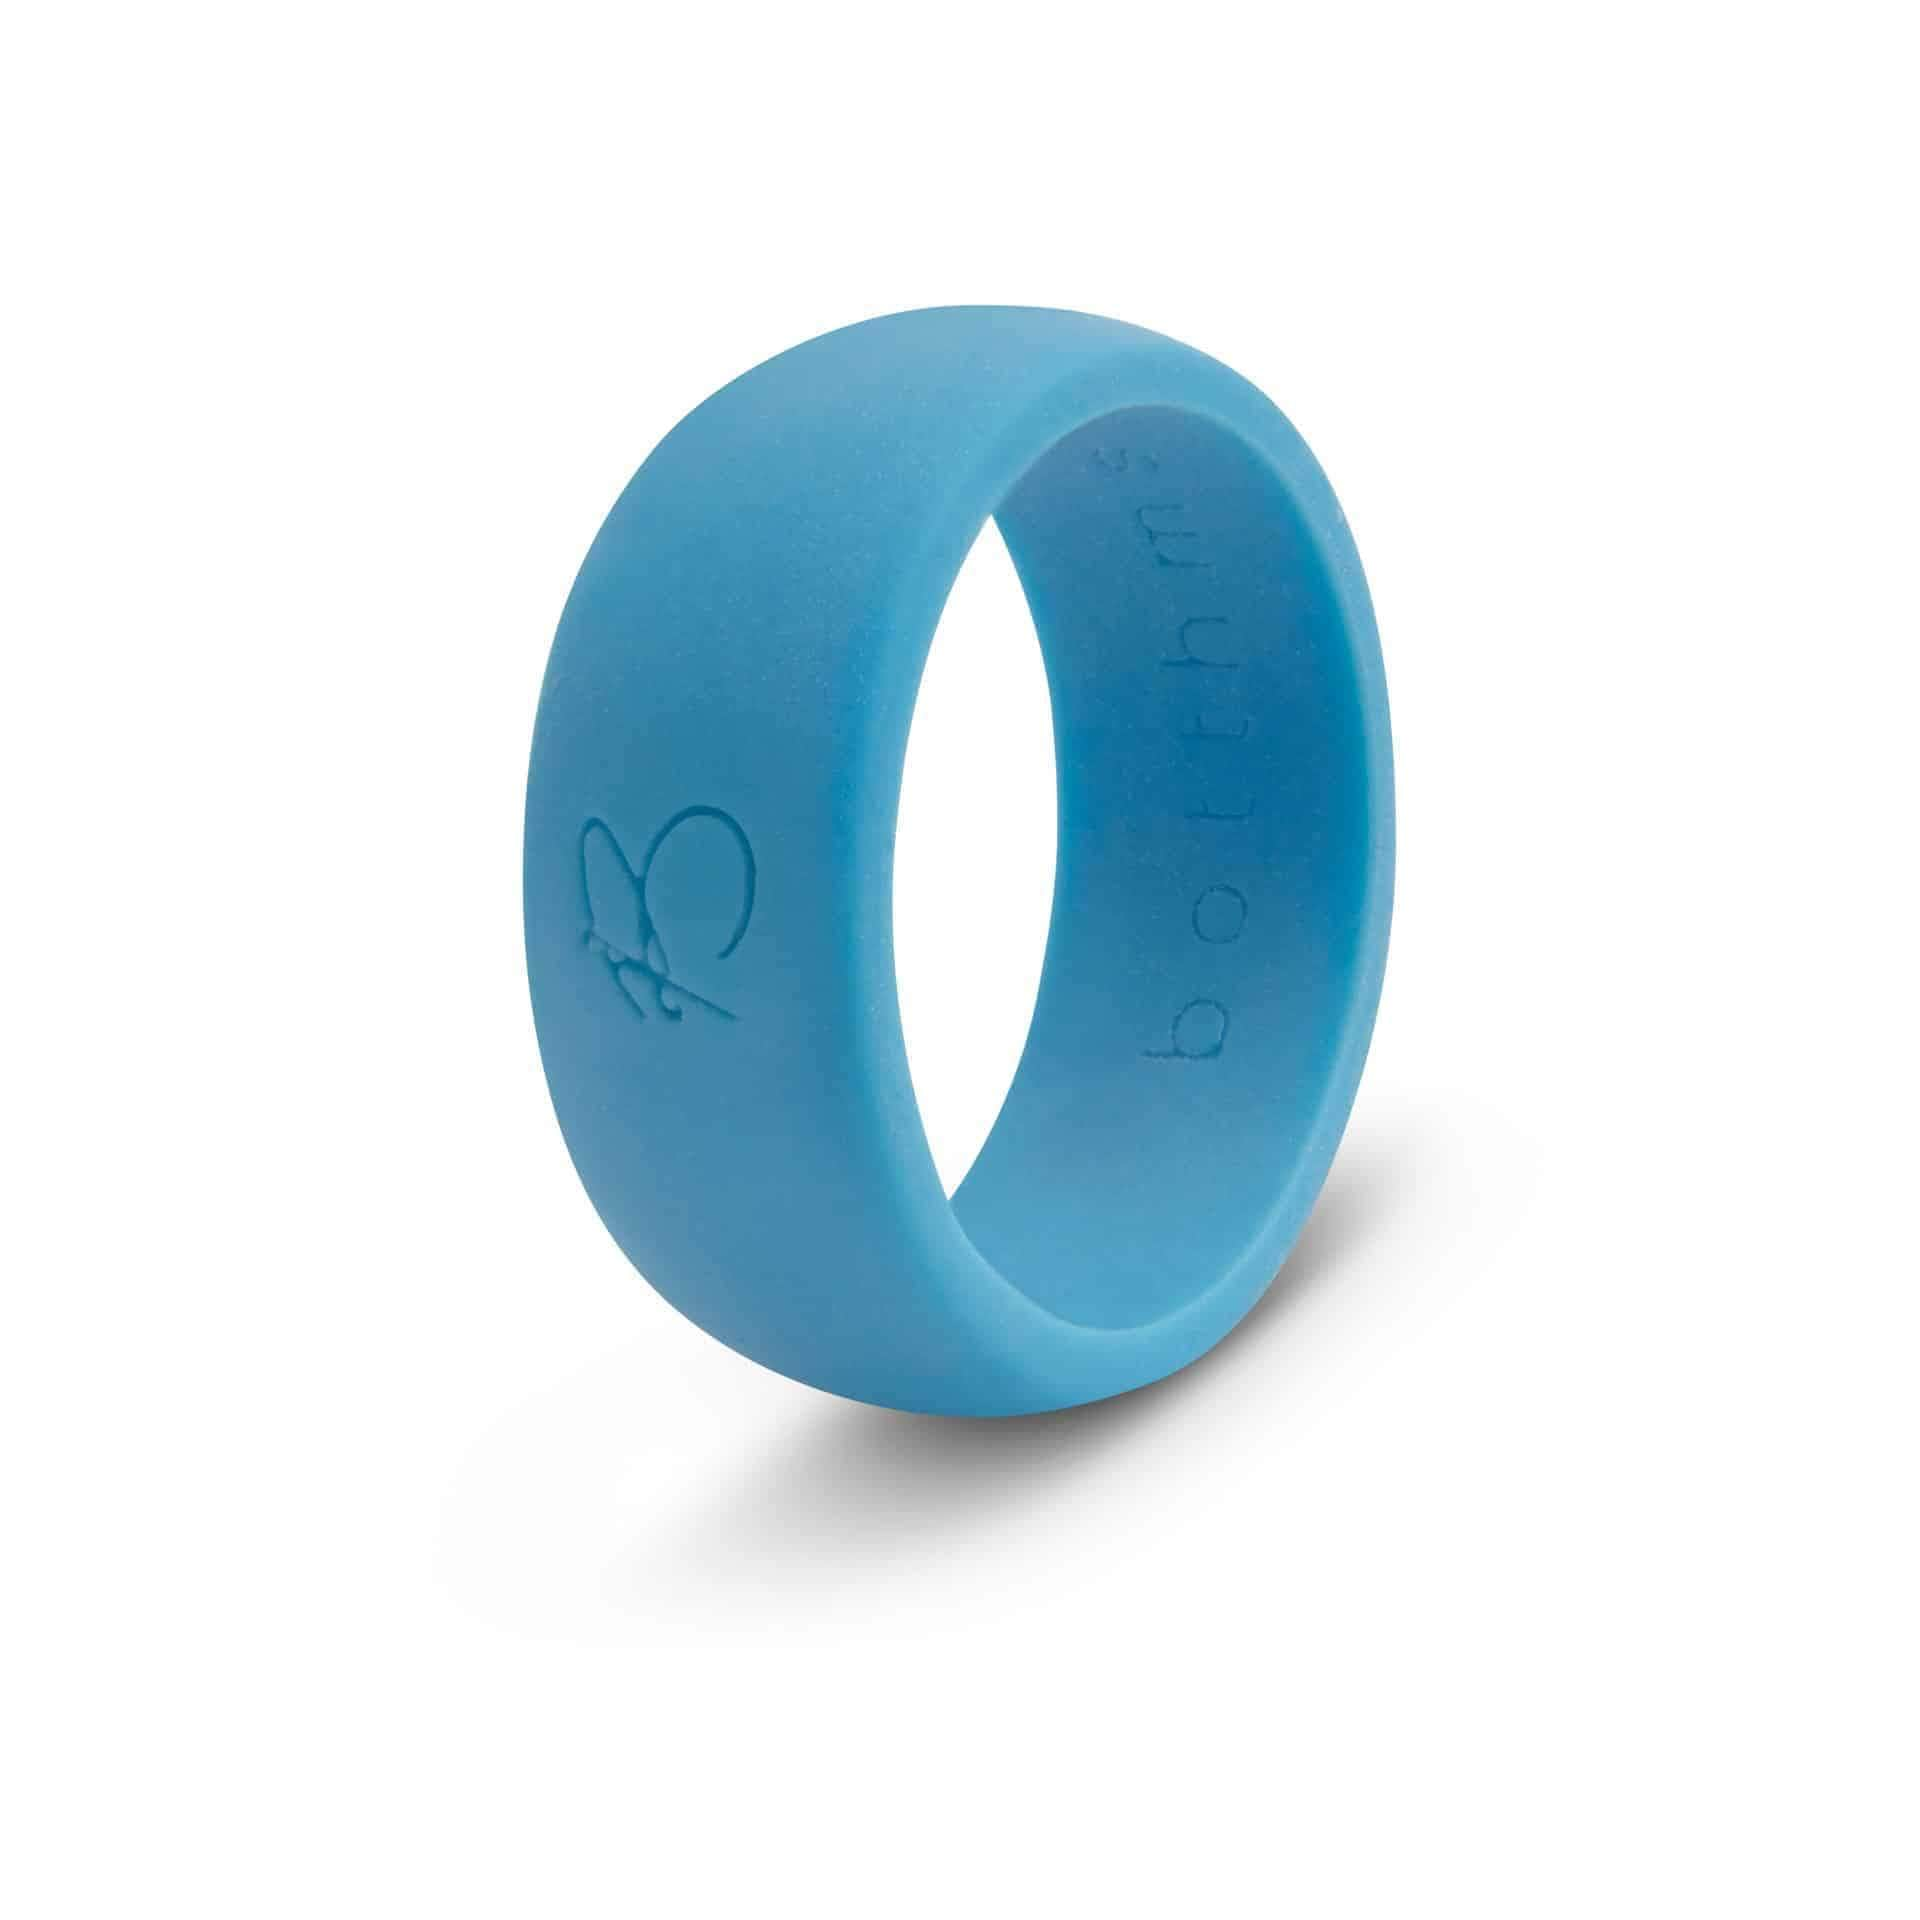 botthms turquoise active silicone ring